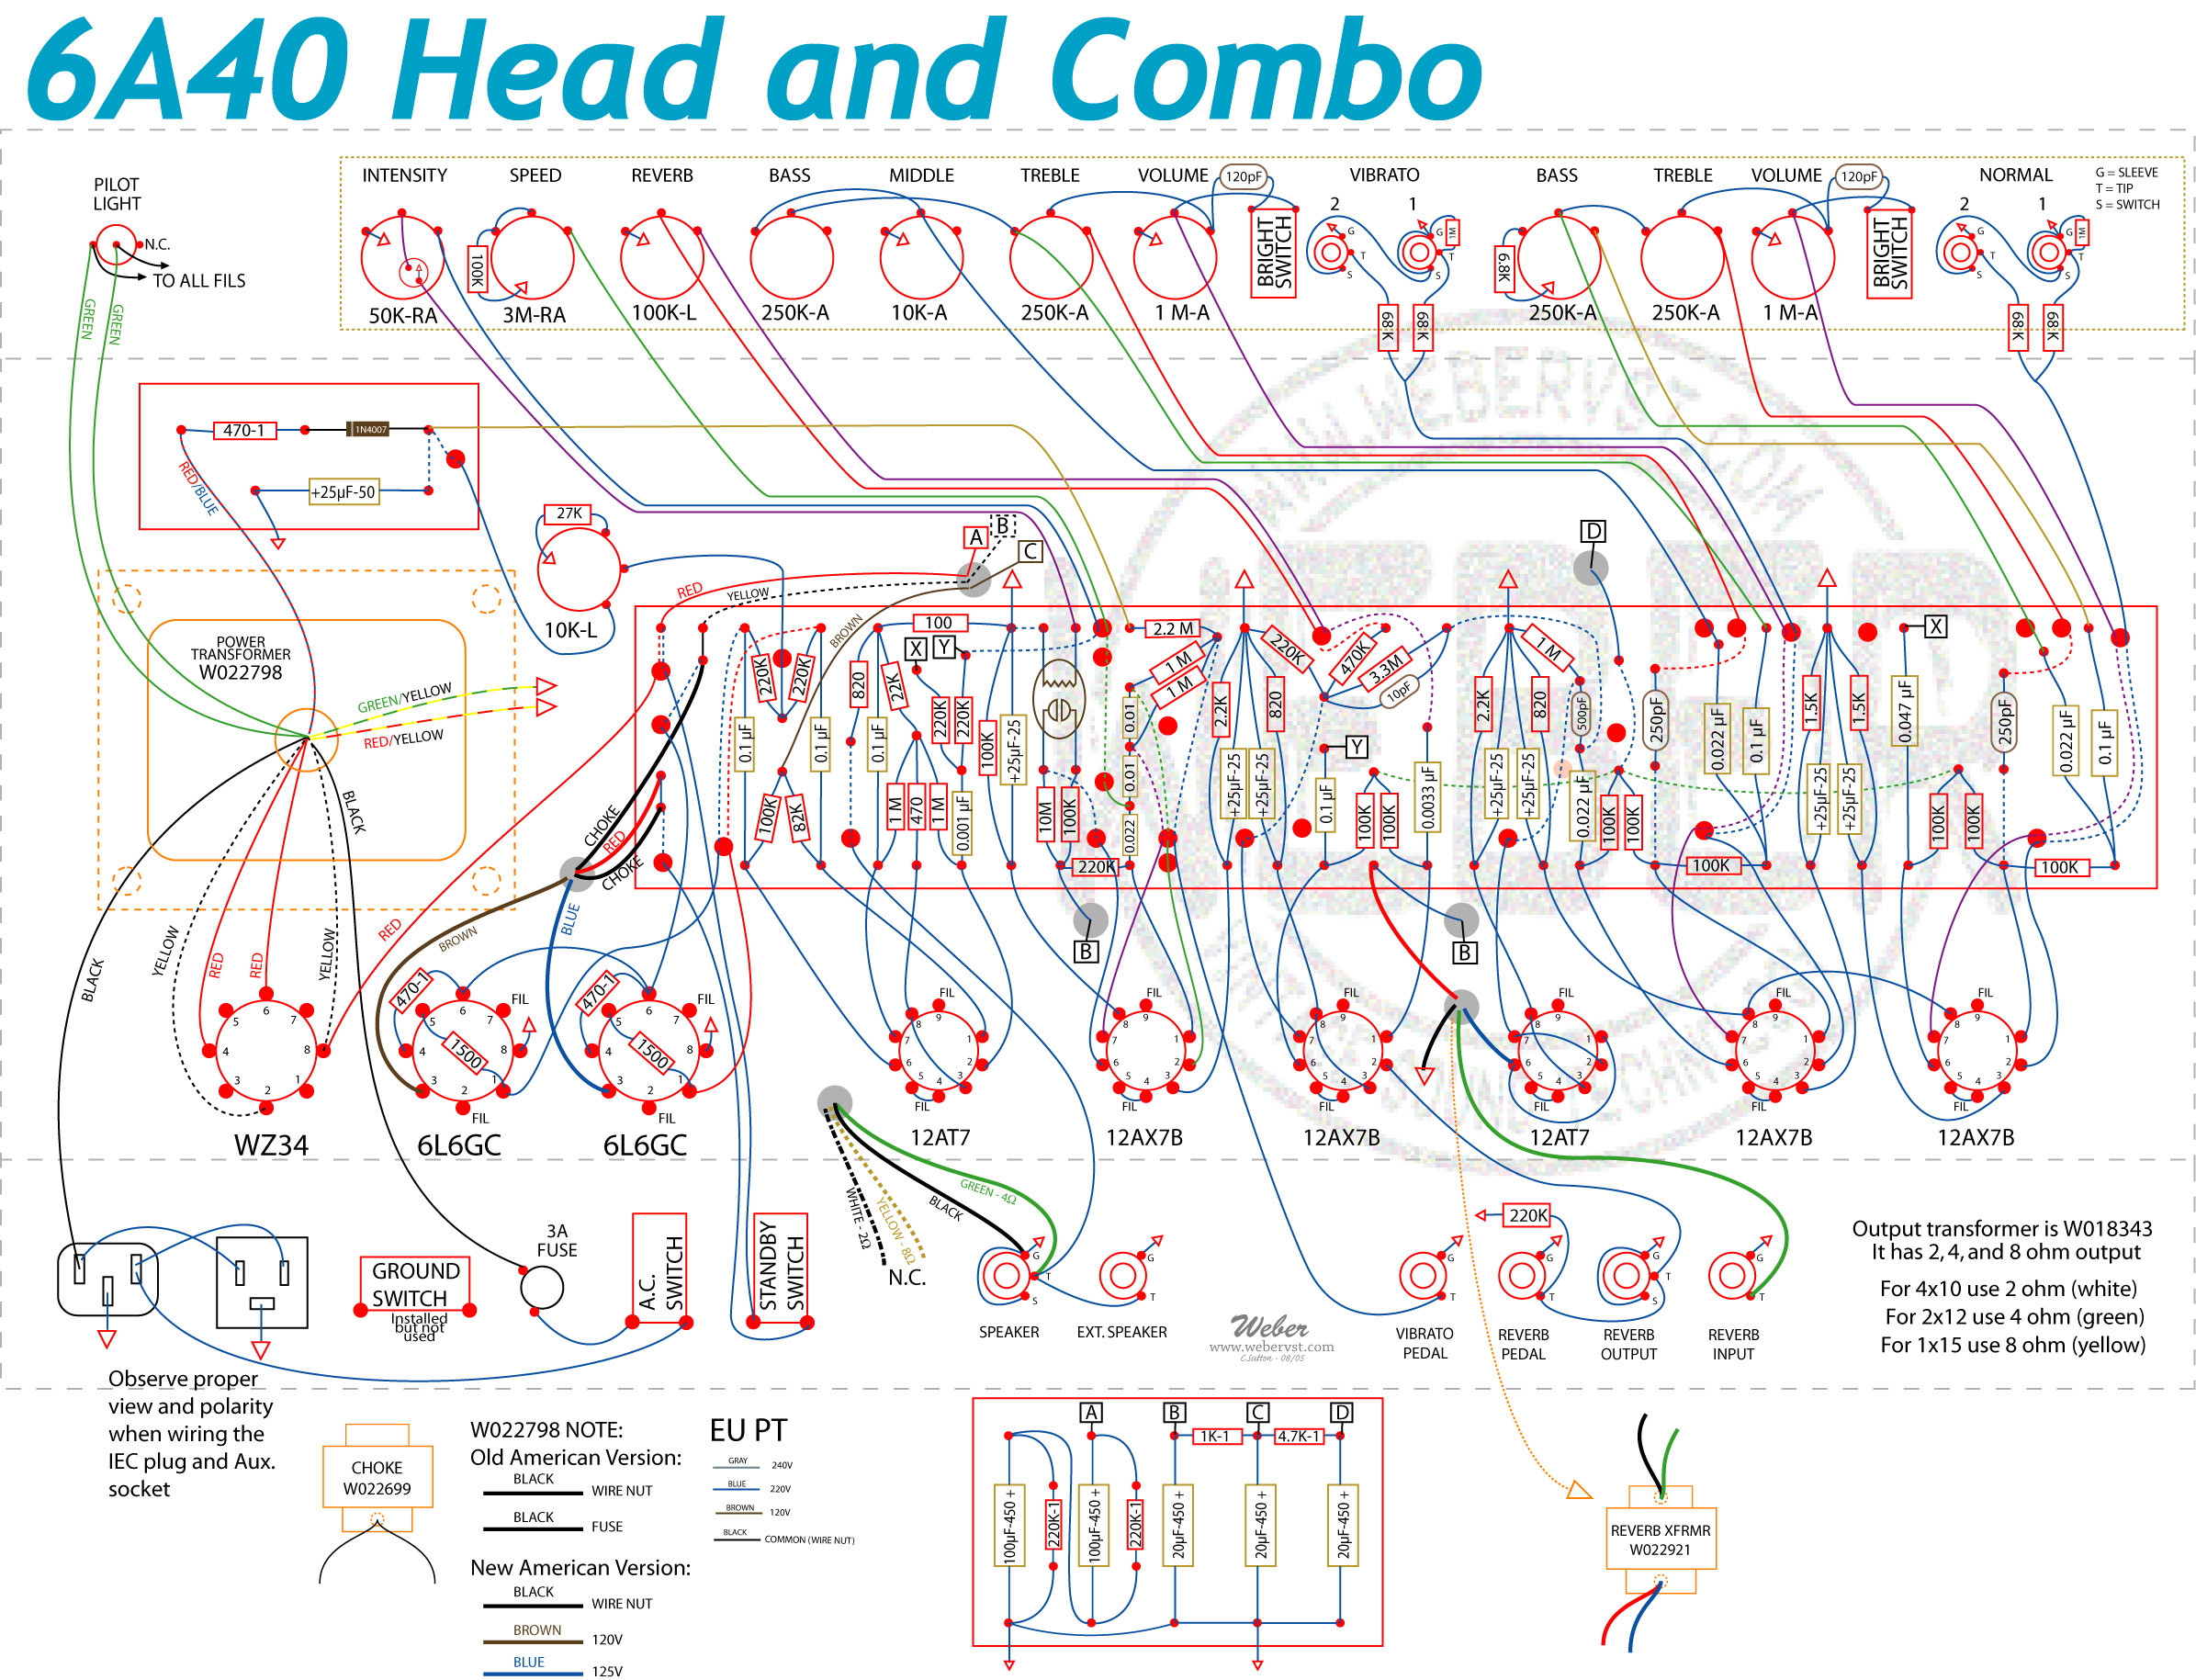 100w Audio   Schematic as well Vintage Reverb Schematic additionally Valve Audio  lifier Schematic in addition 12ax7 Pin Diagram as well High End Tube   Schematics. on tube pre lifier schematic diagram